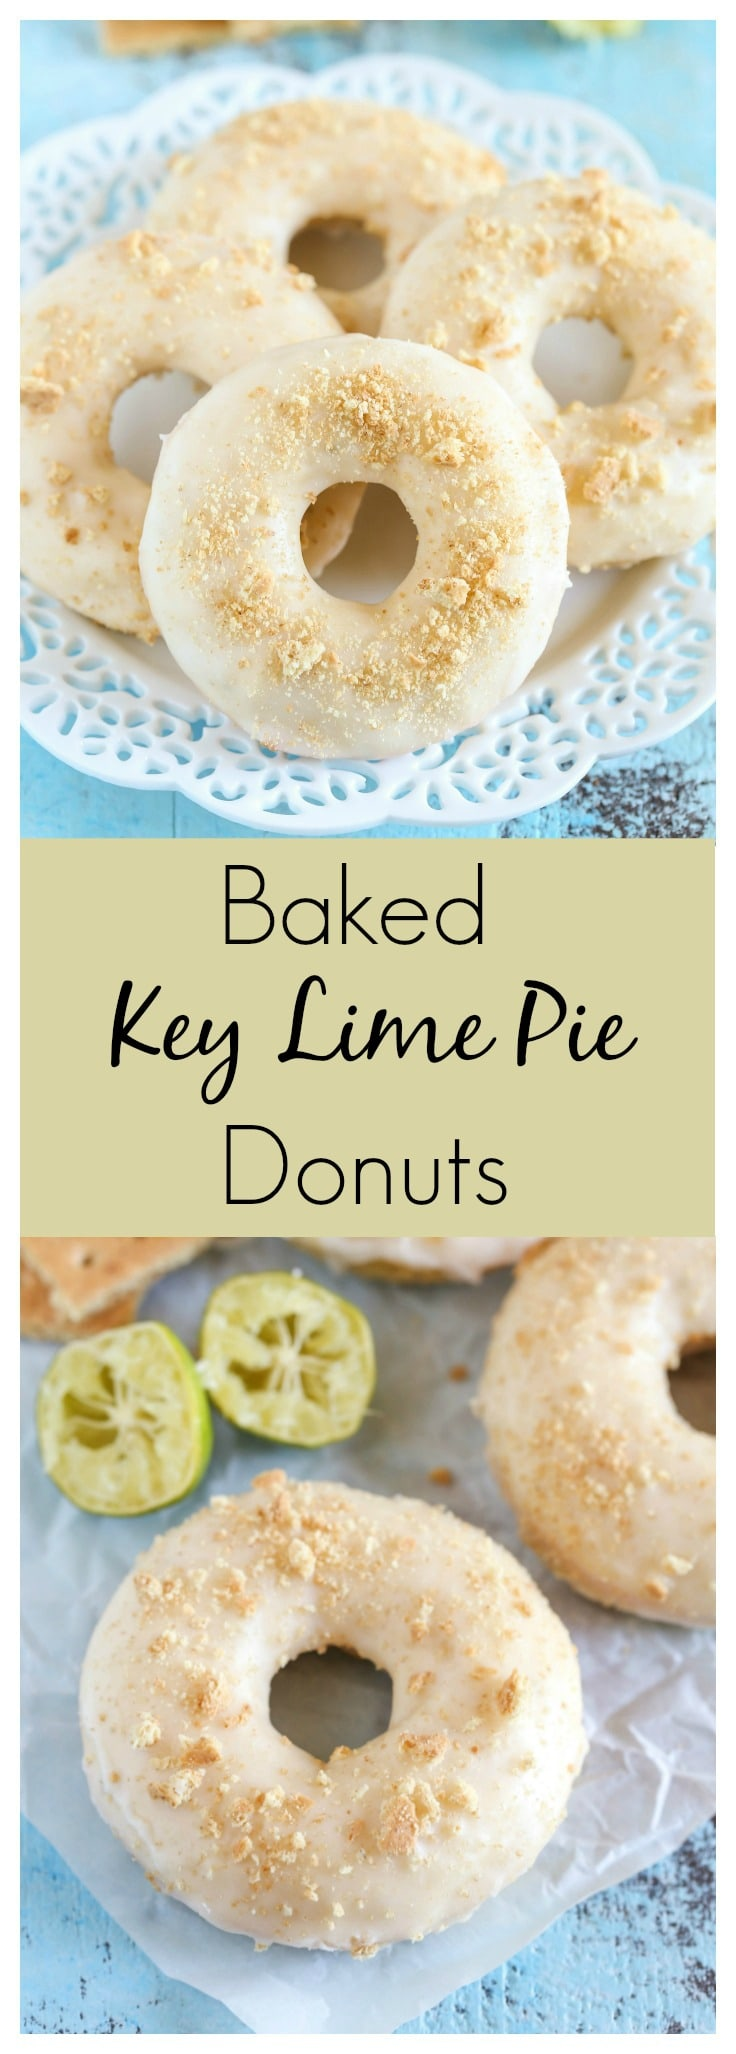 Easy Baked Key Lime Pie Donuts topped with a key lime glaze and crushed graham crackers!